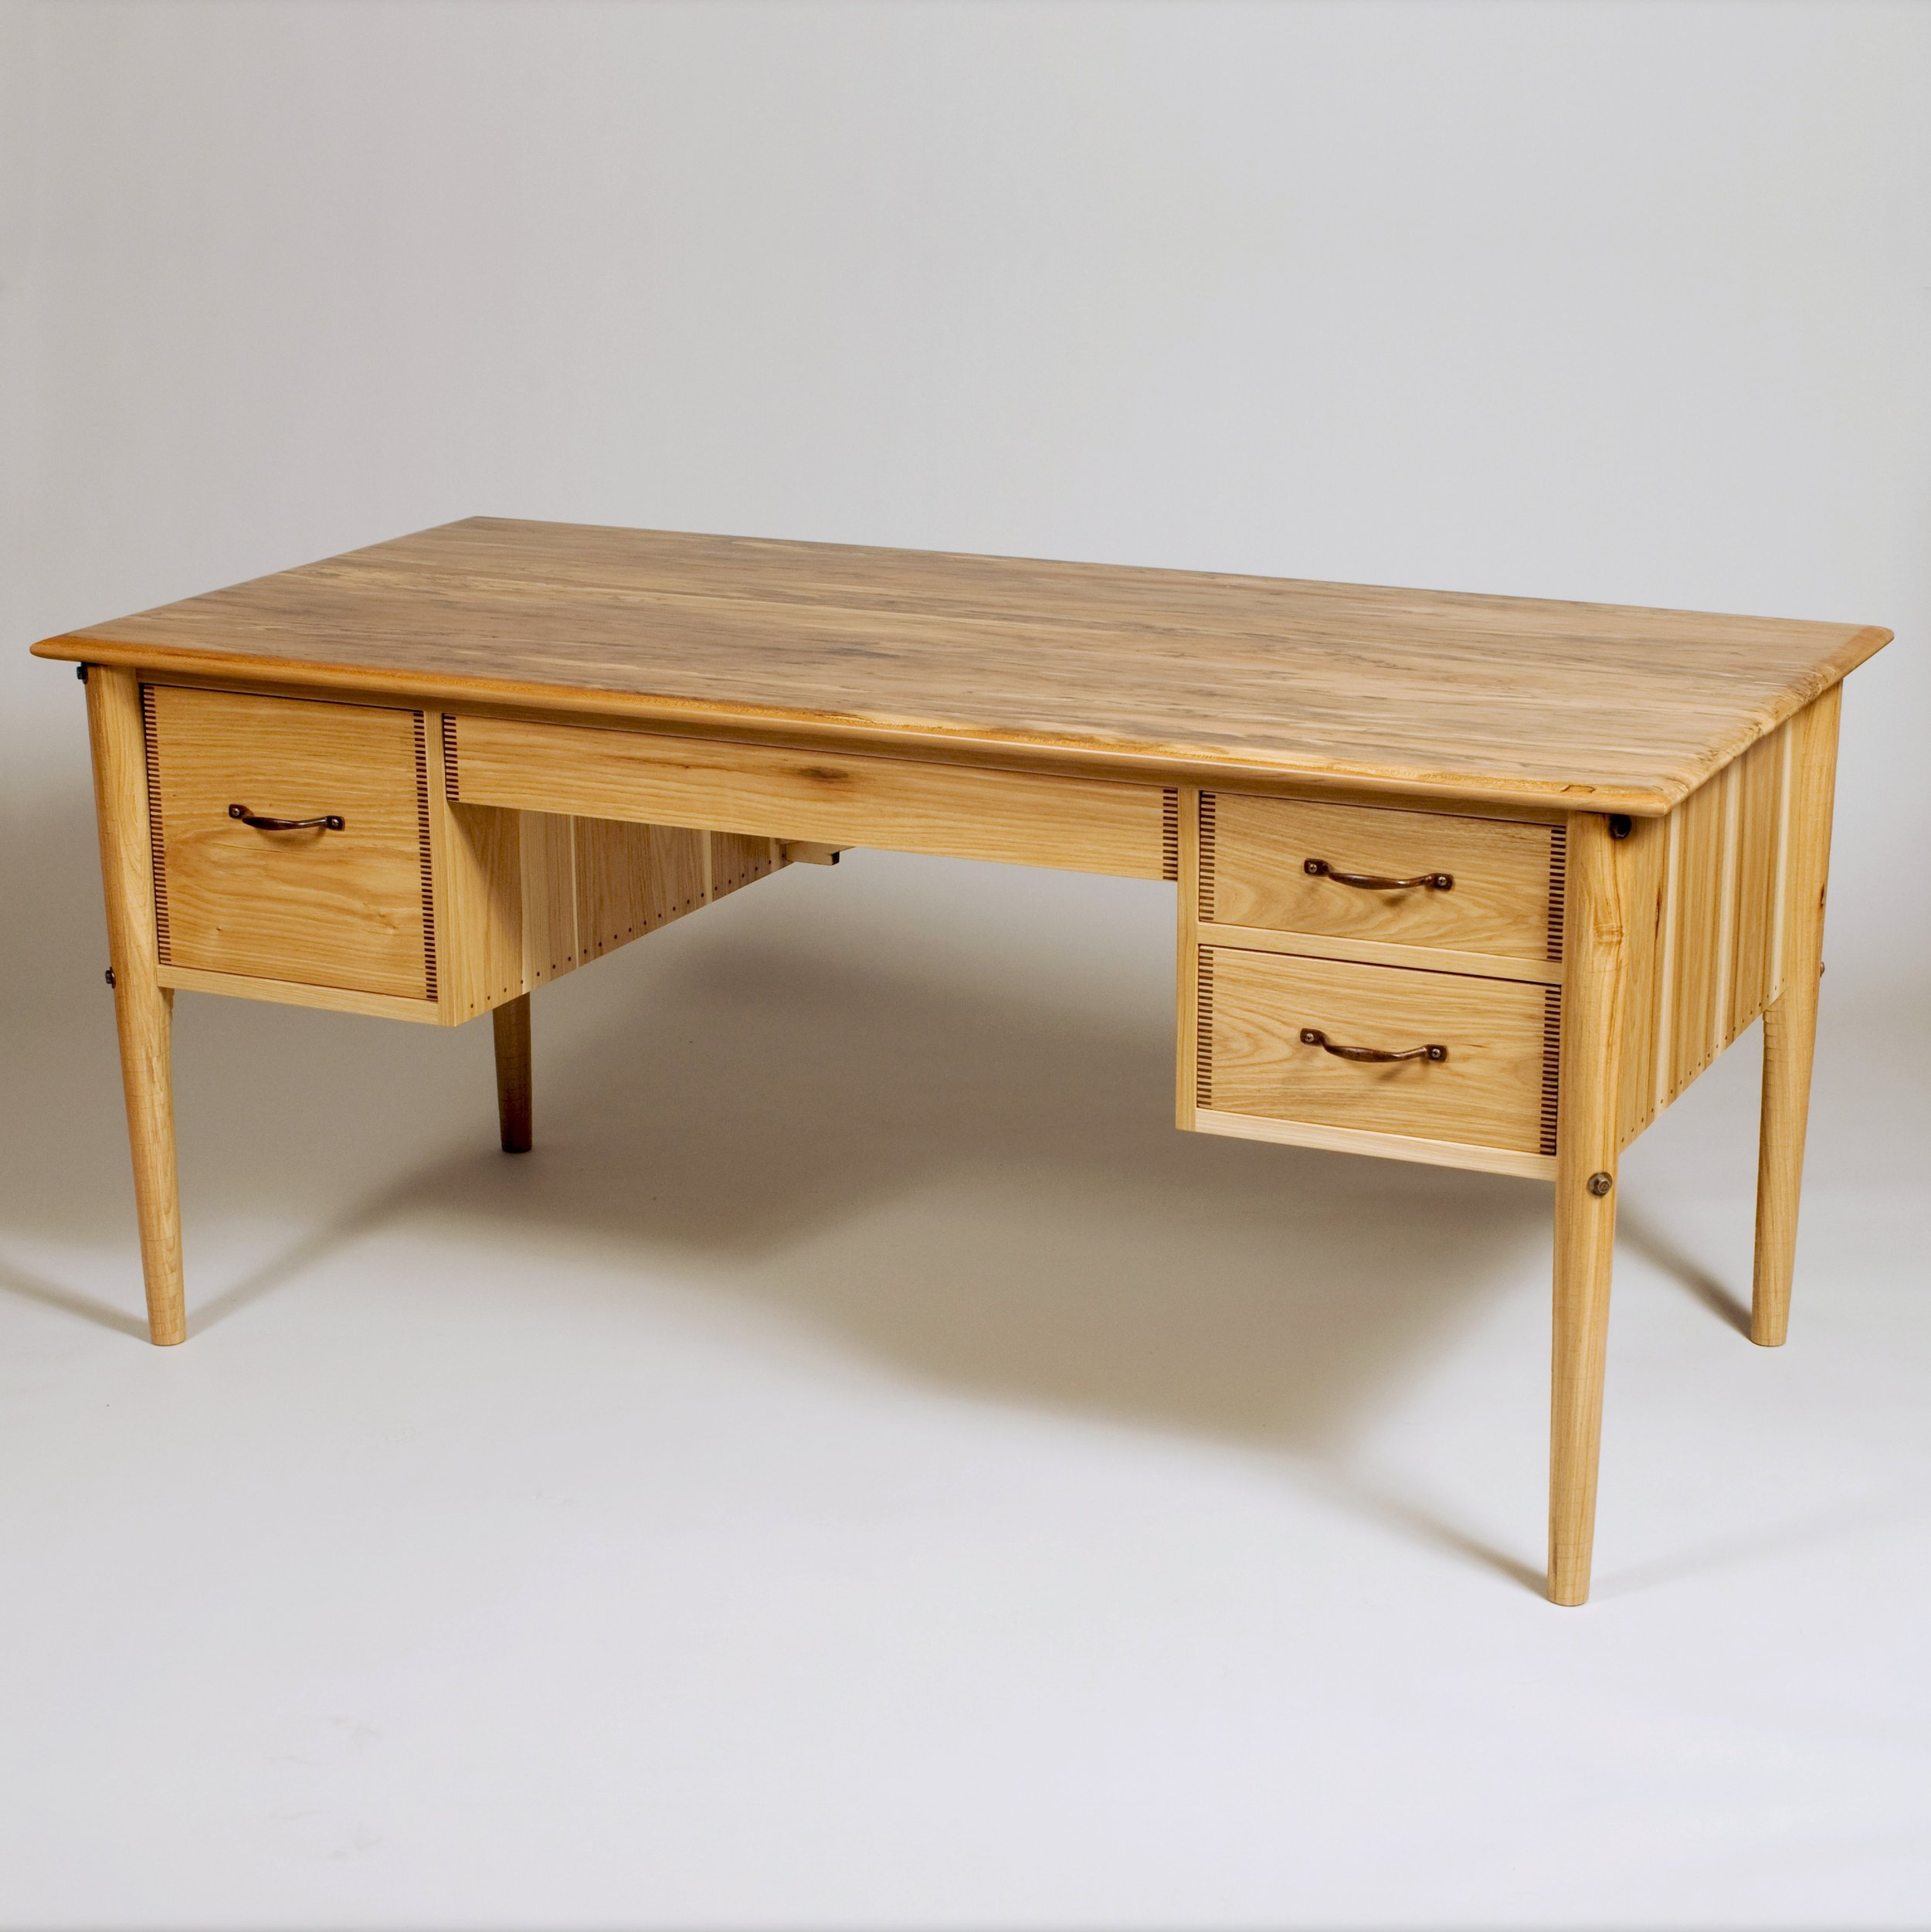 desk-baird-brown-002.jpg